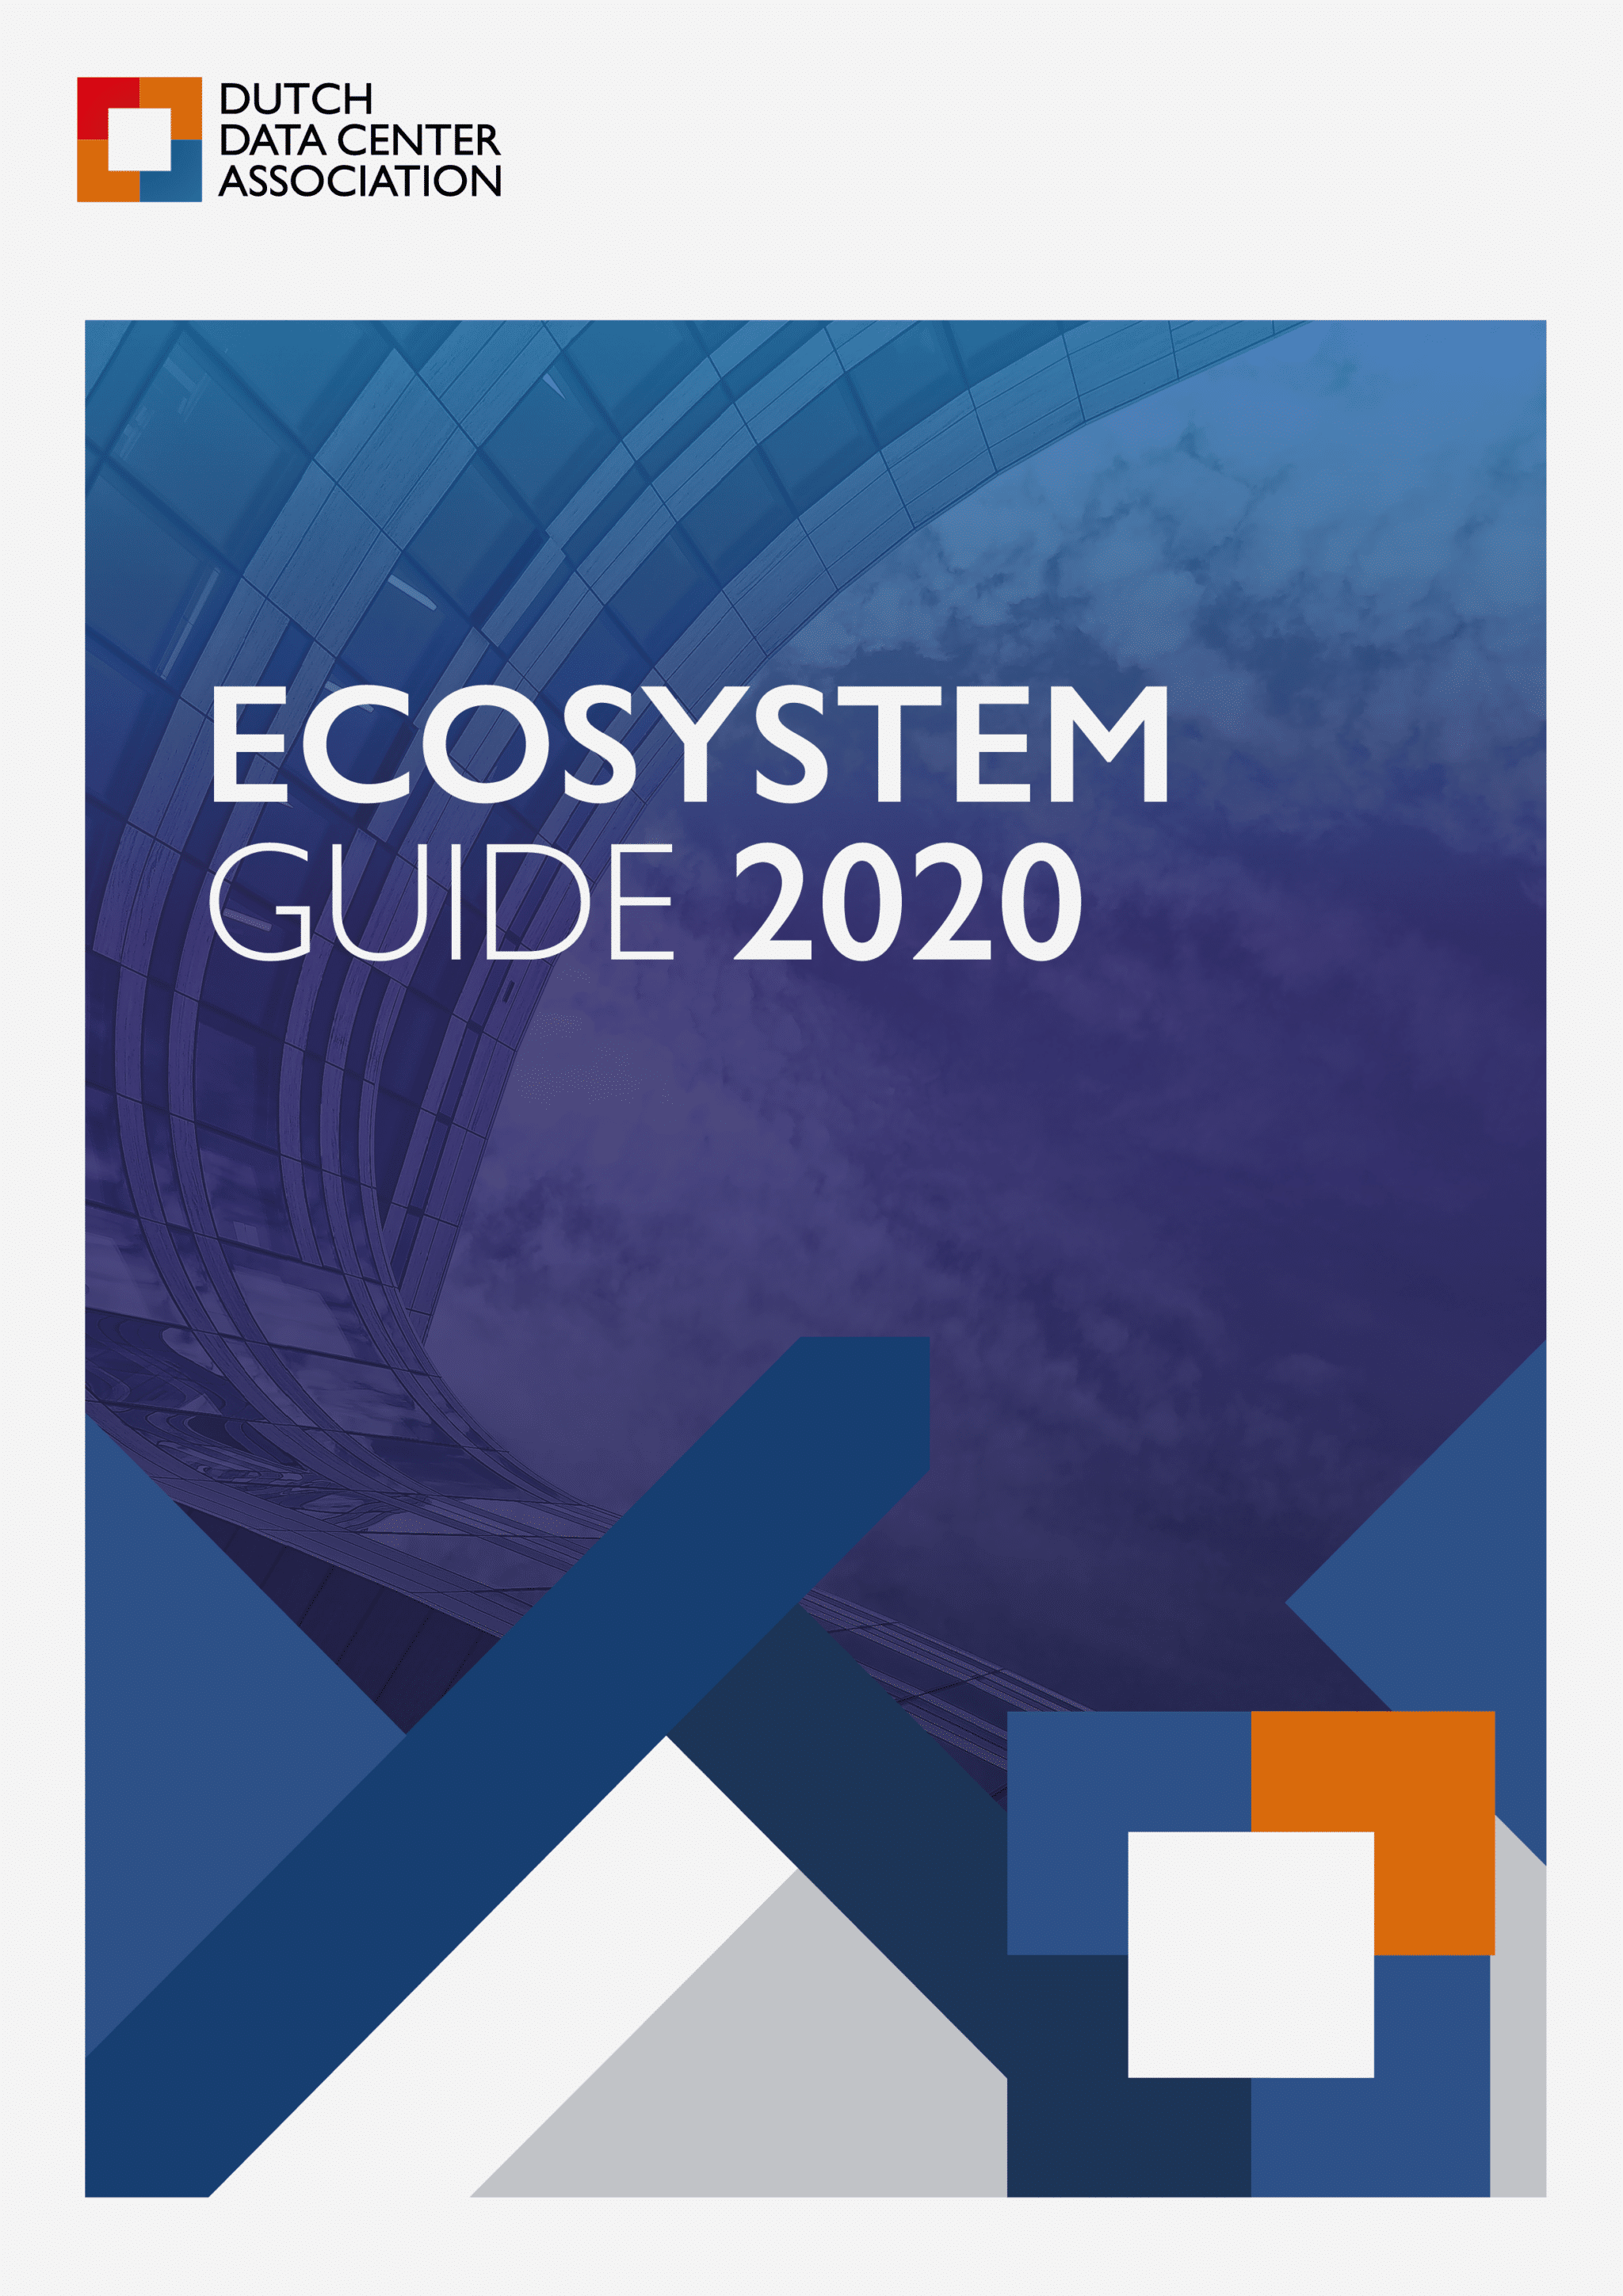 Ecosystem Guide 2020